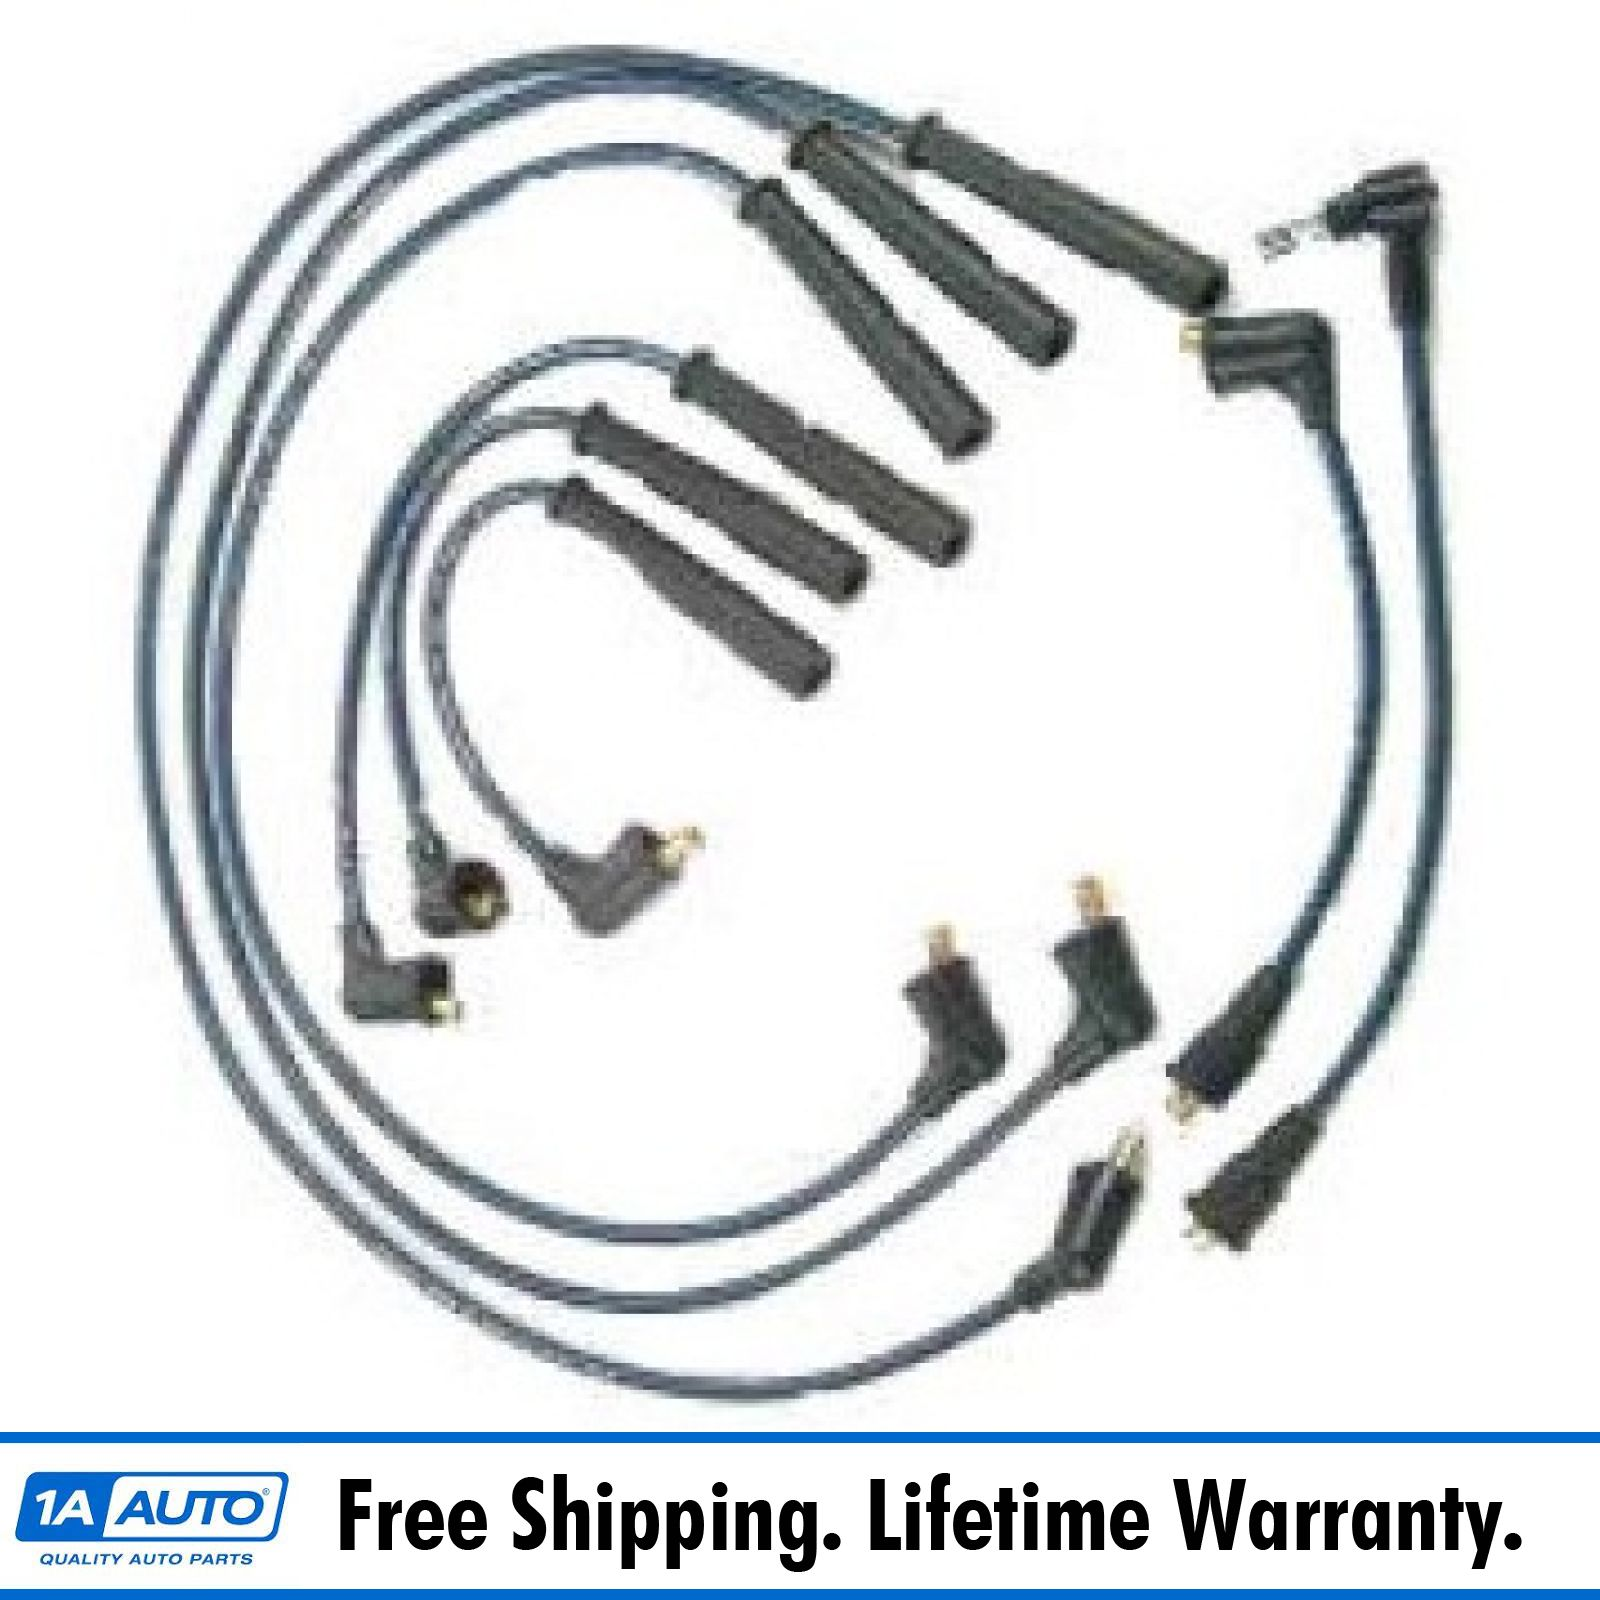 hight resolution of ignition spark plug wire set kit for 88 91 toyota pickup 4runner 3 0l